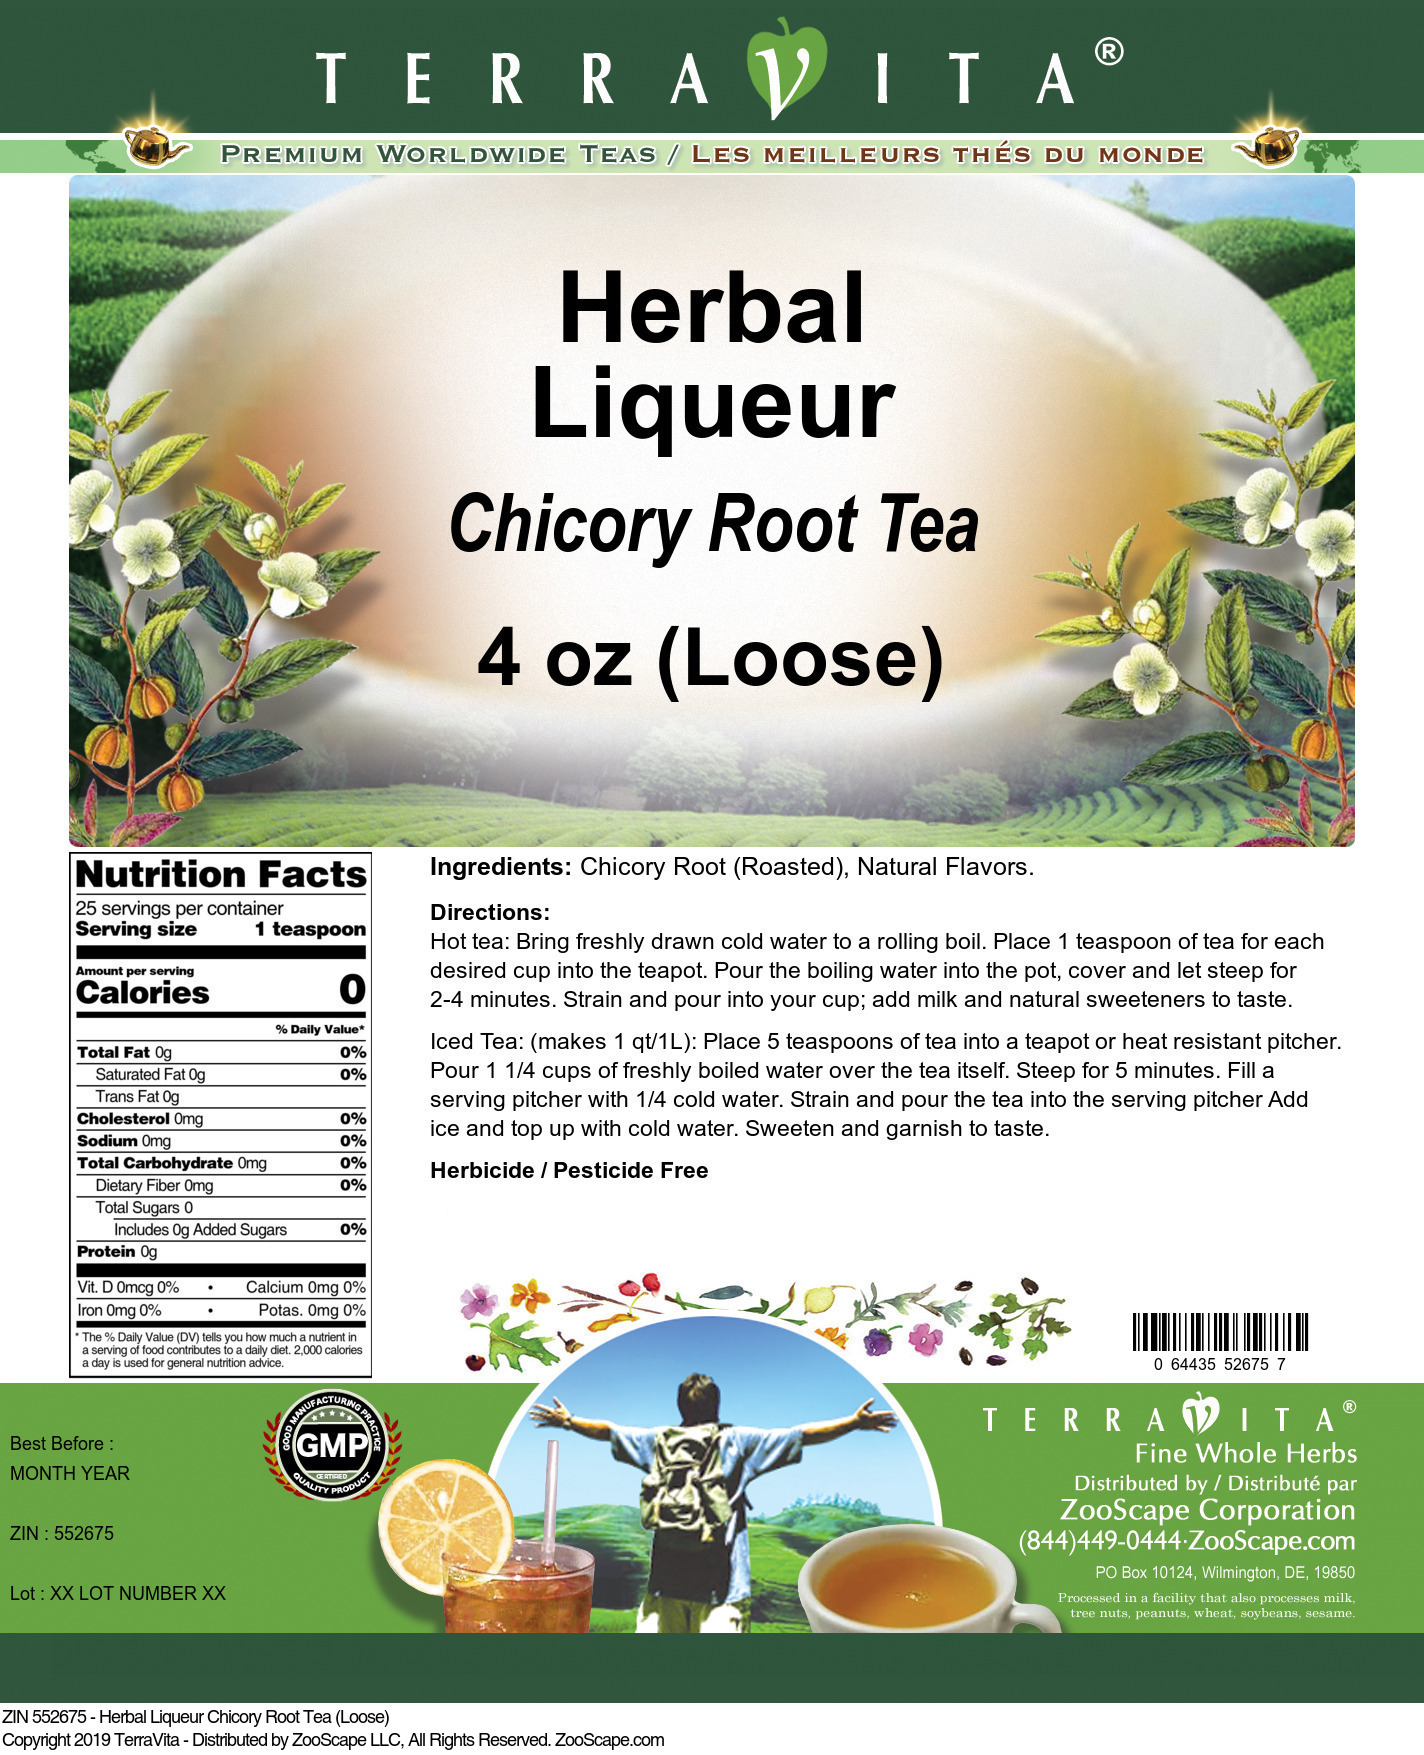 Herbal Liqueur Chicory Root